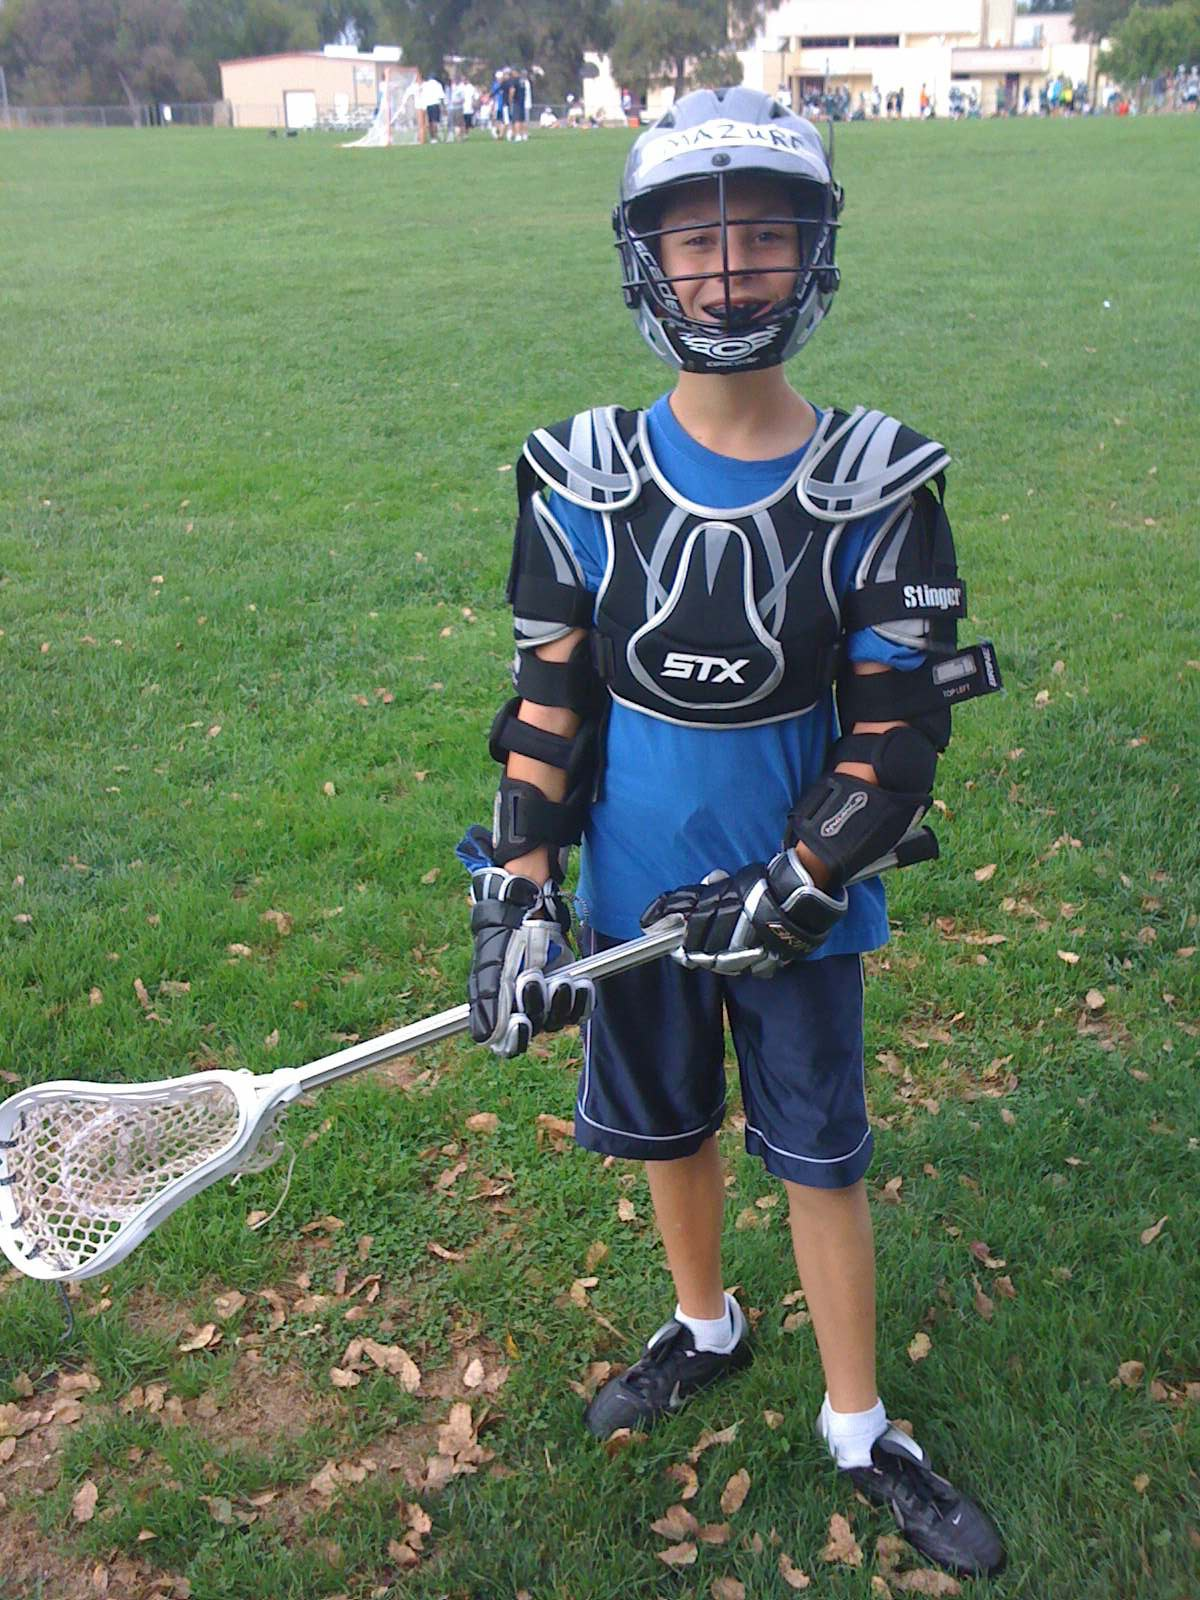 Mazure started playing lacrosse when he was 9 years old.